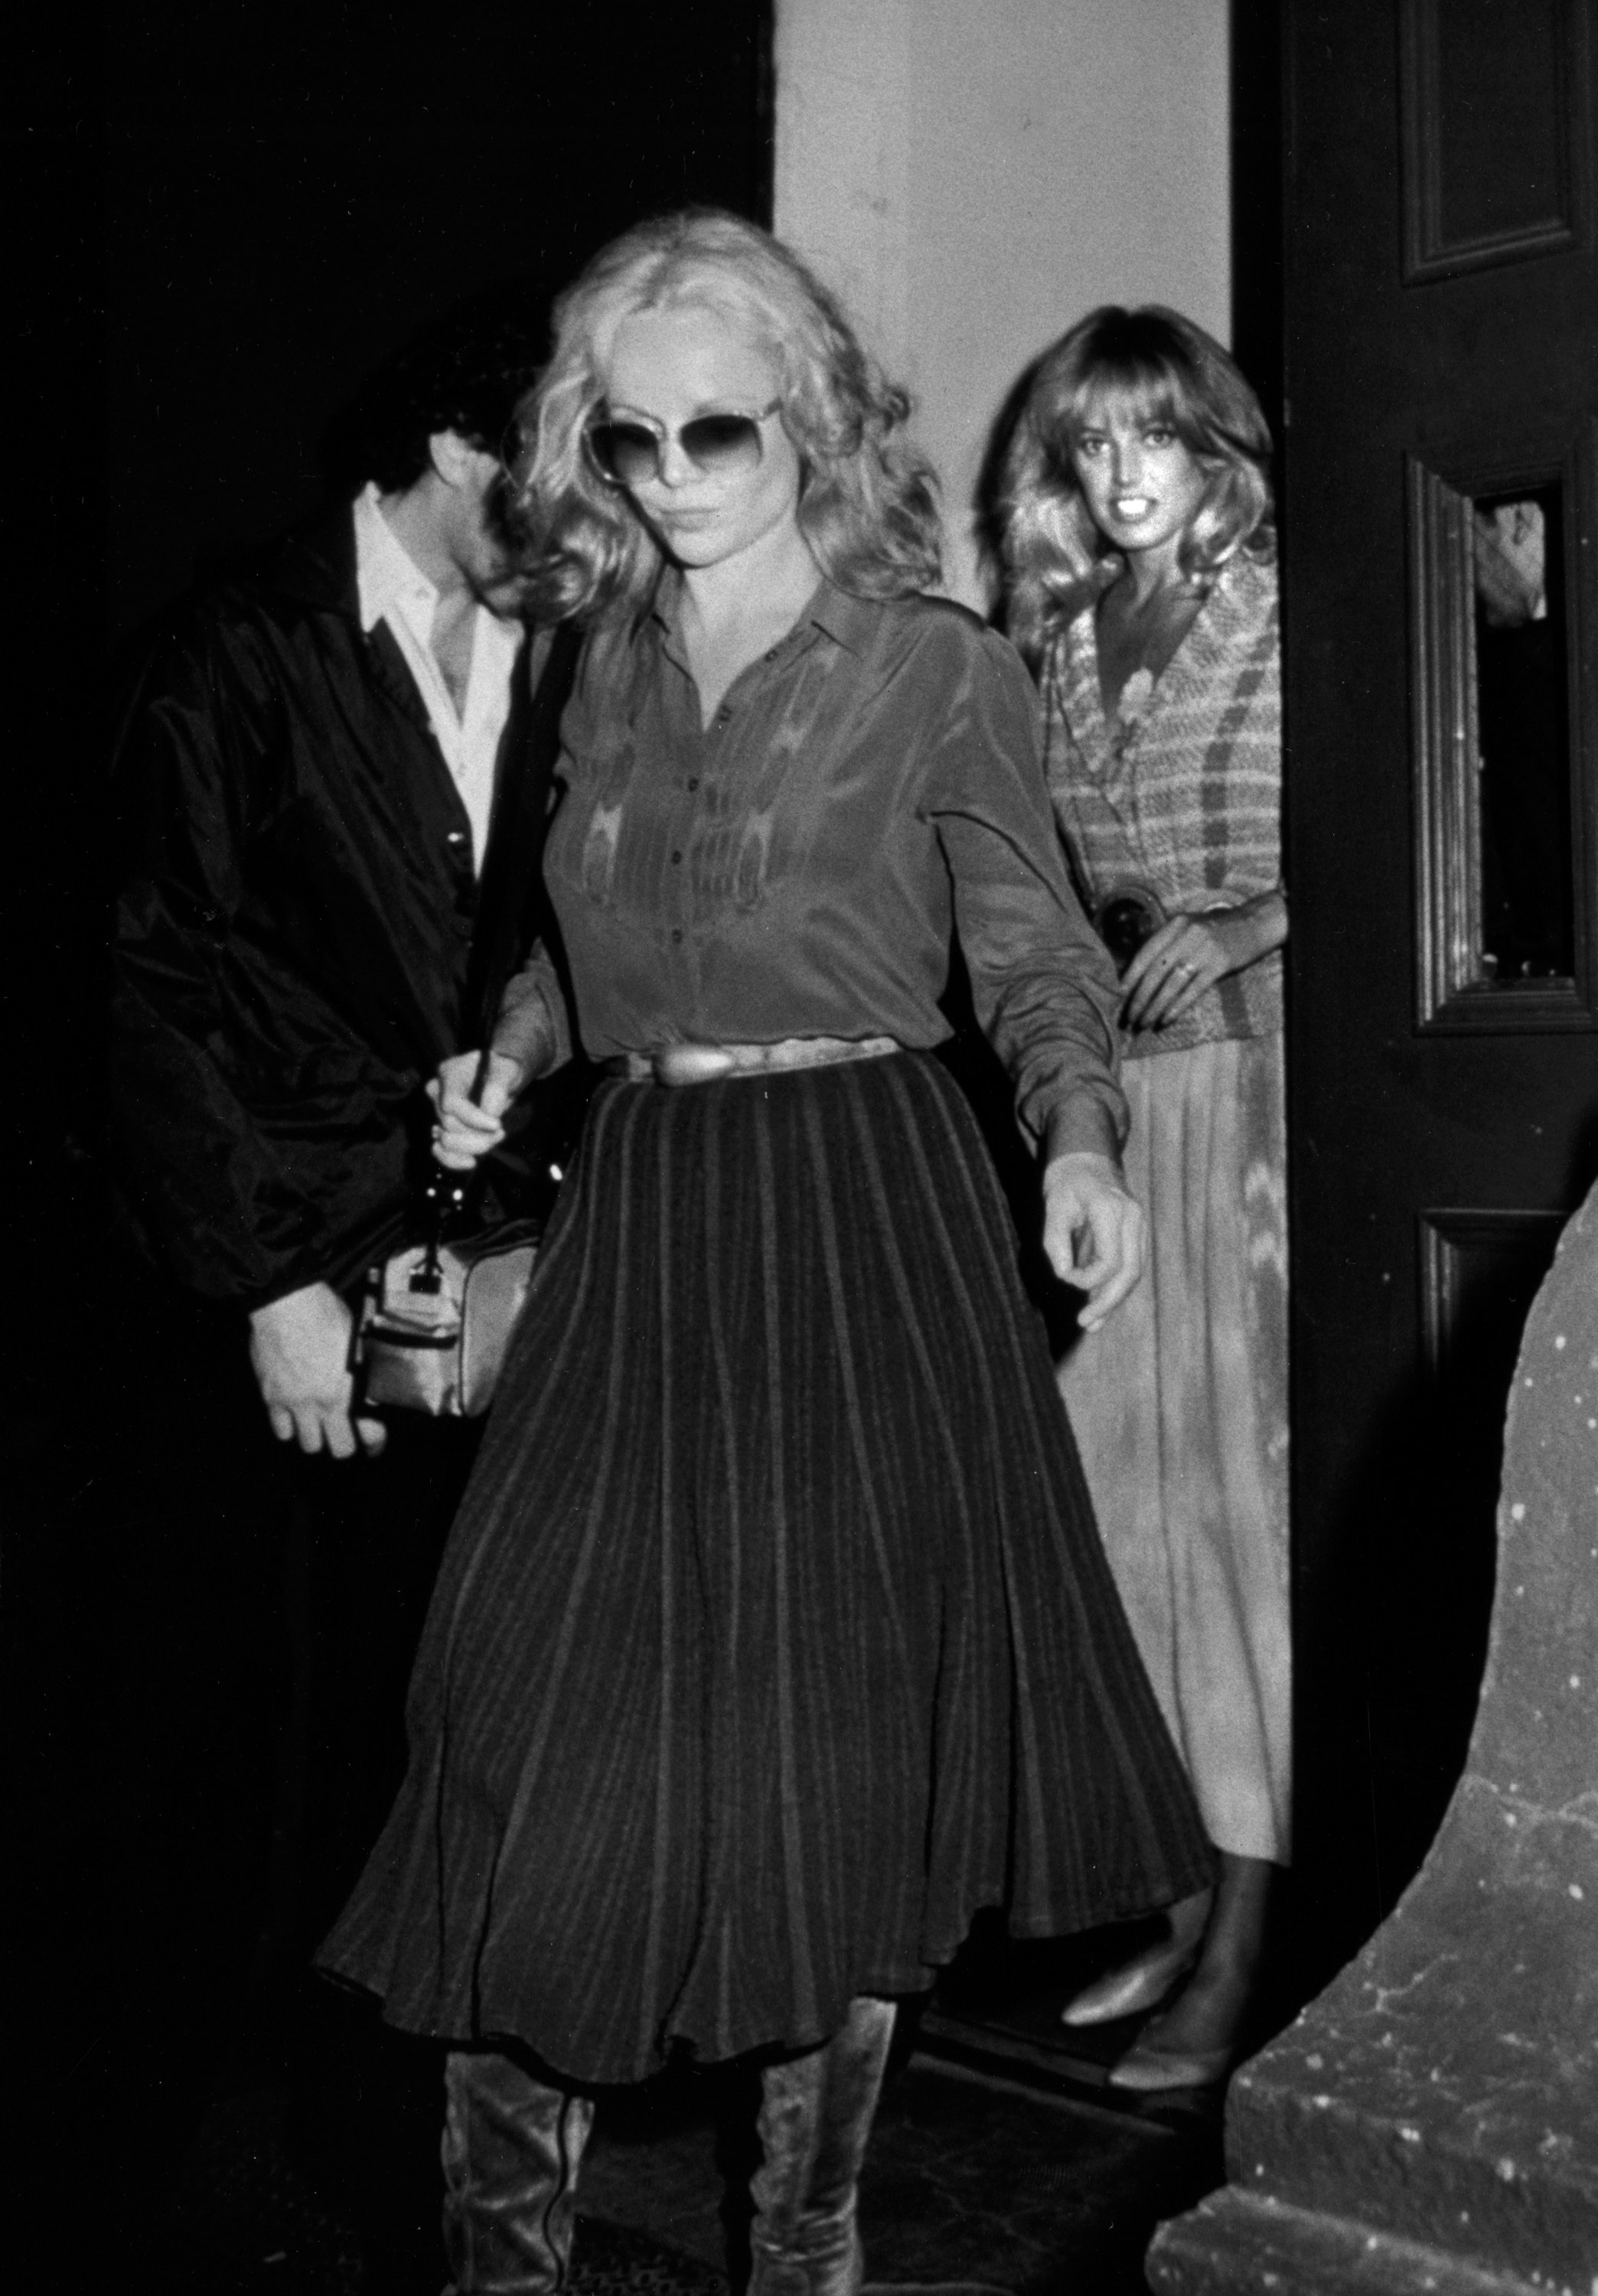 Tuesday Weld and Susan Anton at Carnegie Hall, New York City on June 6, 1983. | Source: Getty Images